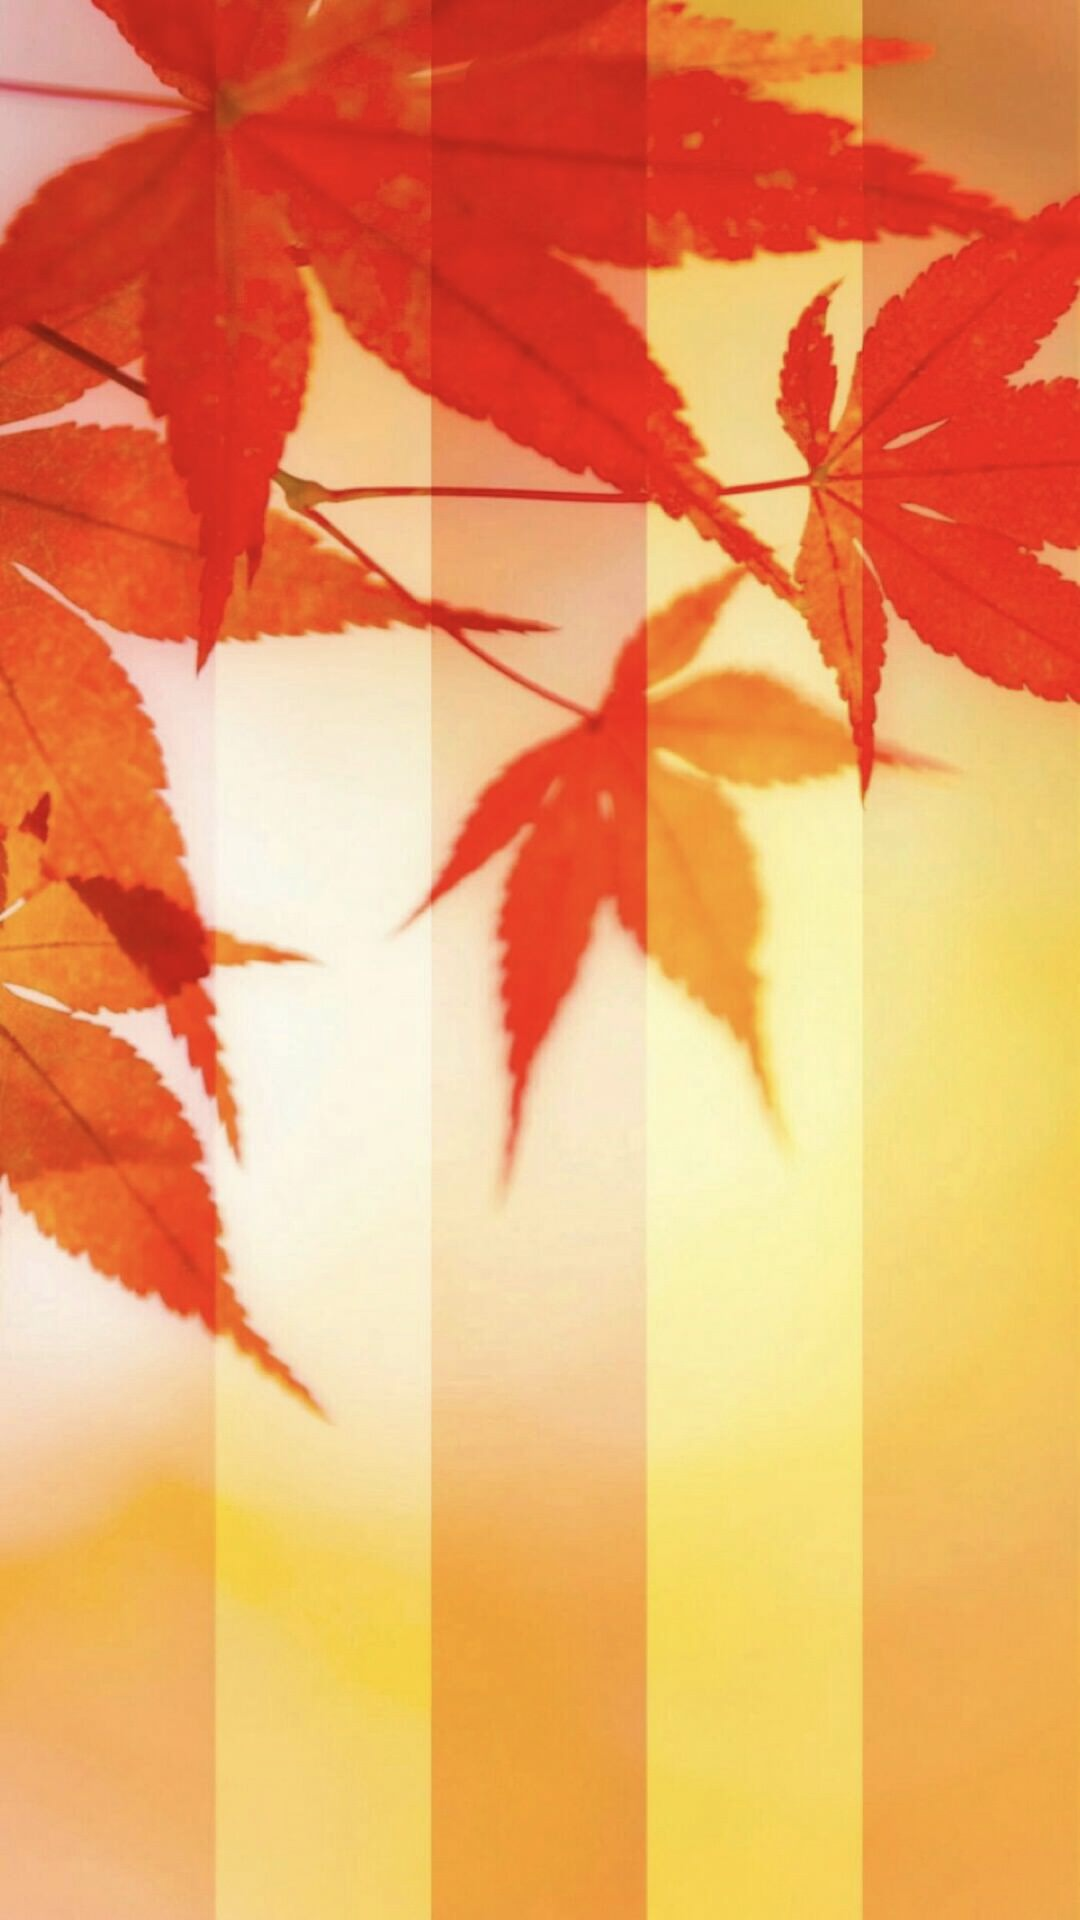 紅葉 秋 Wallpaper Sc Iphone6splus壁紙